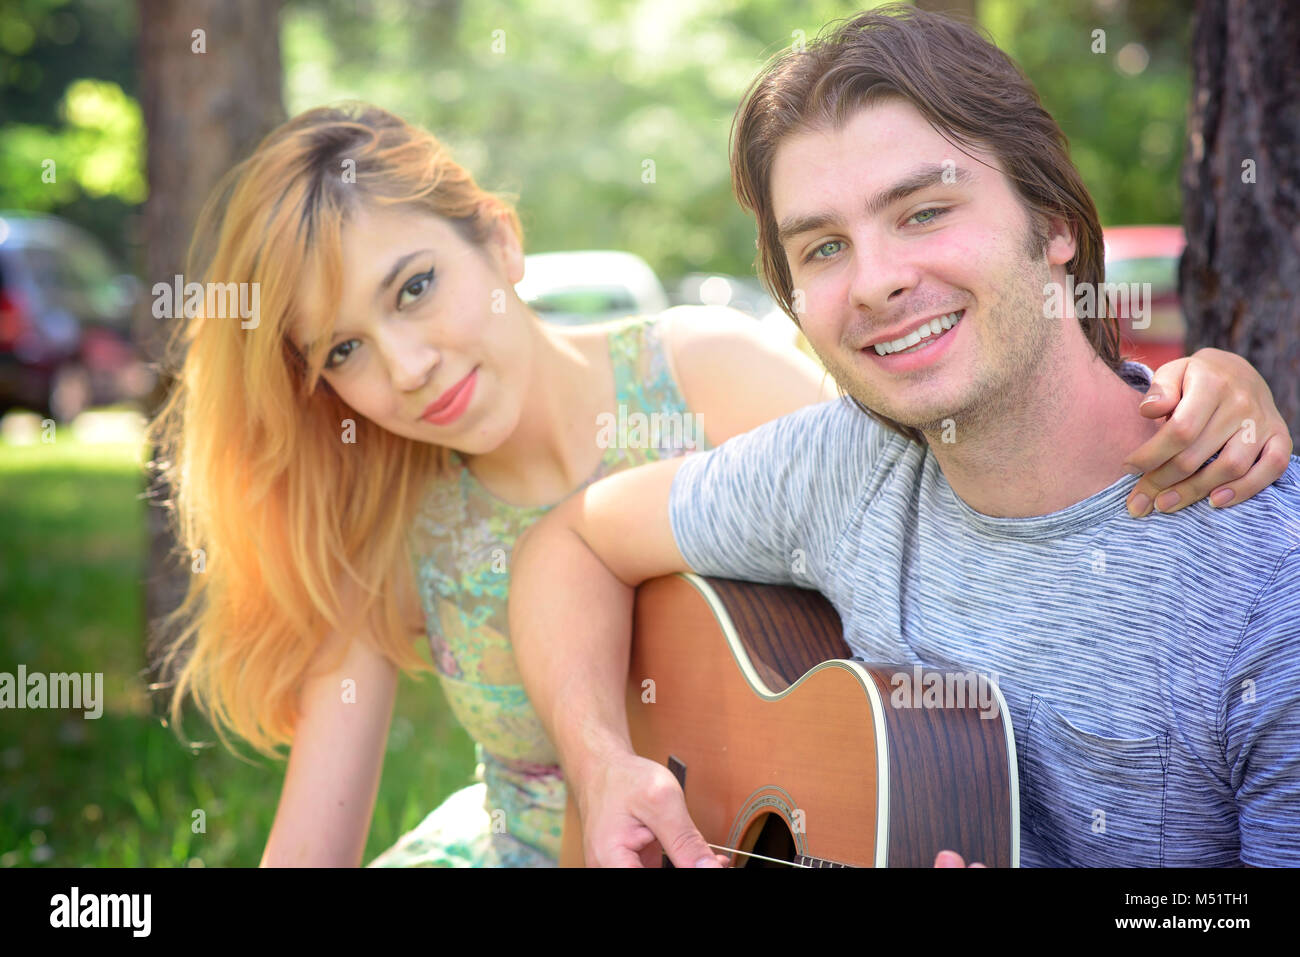 Sweet couple in love in the park - Stock Image